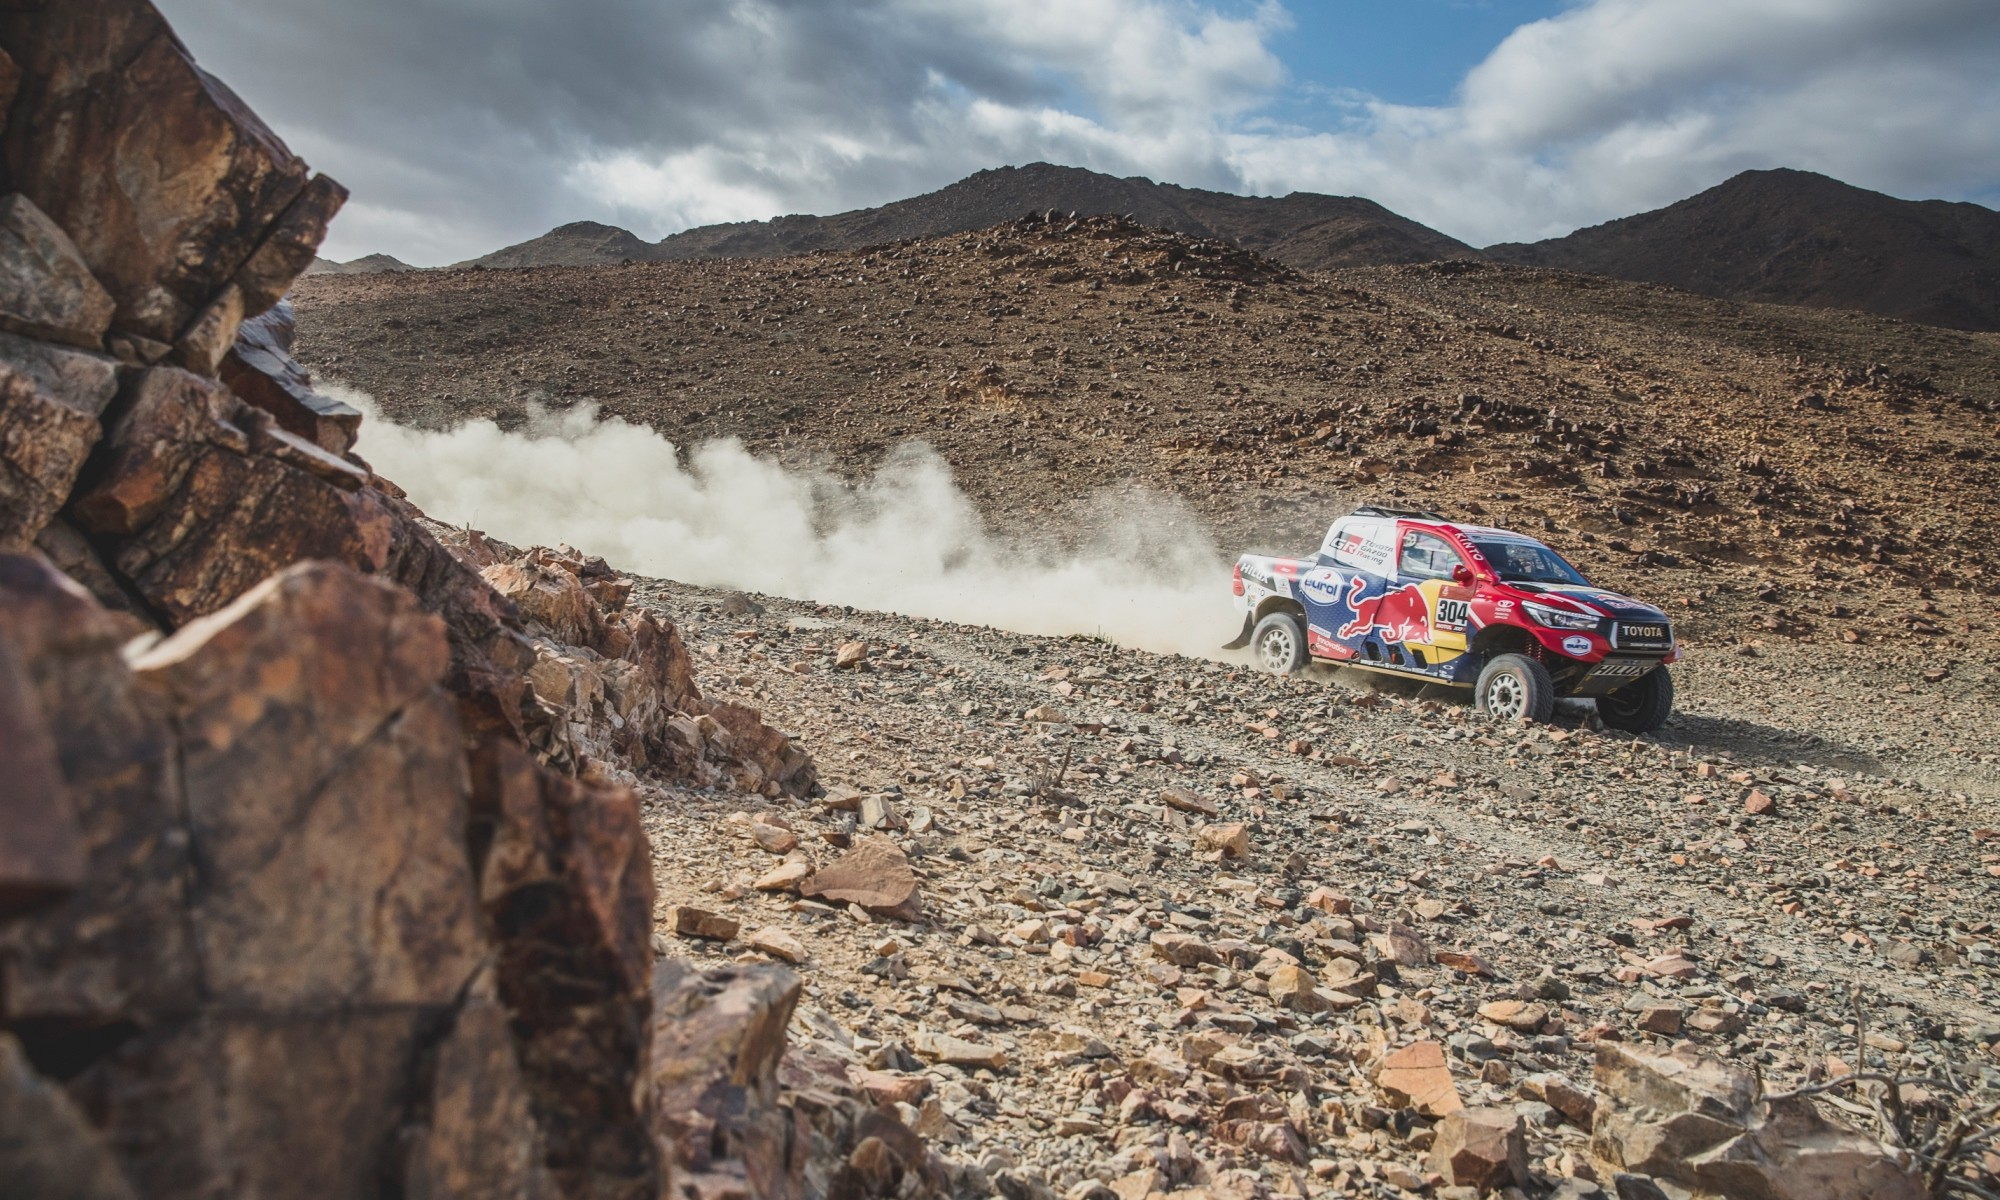 Giniel de Villier finished 2020 Dakar stage 5 in sixth place.